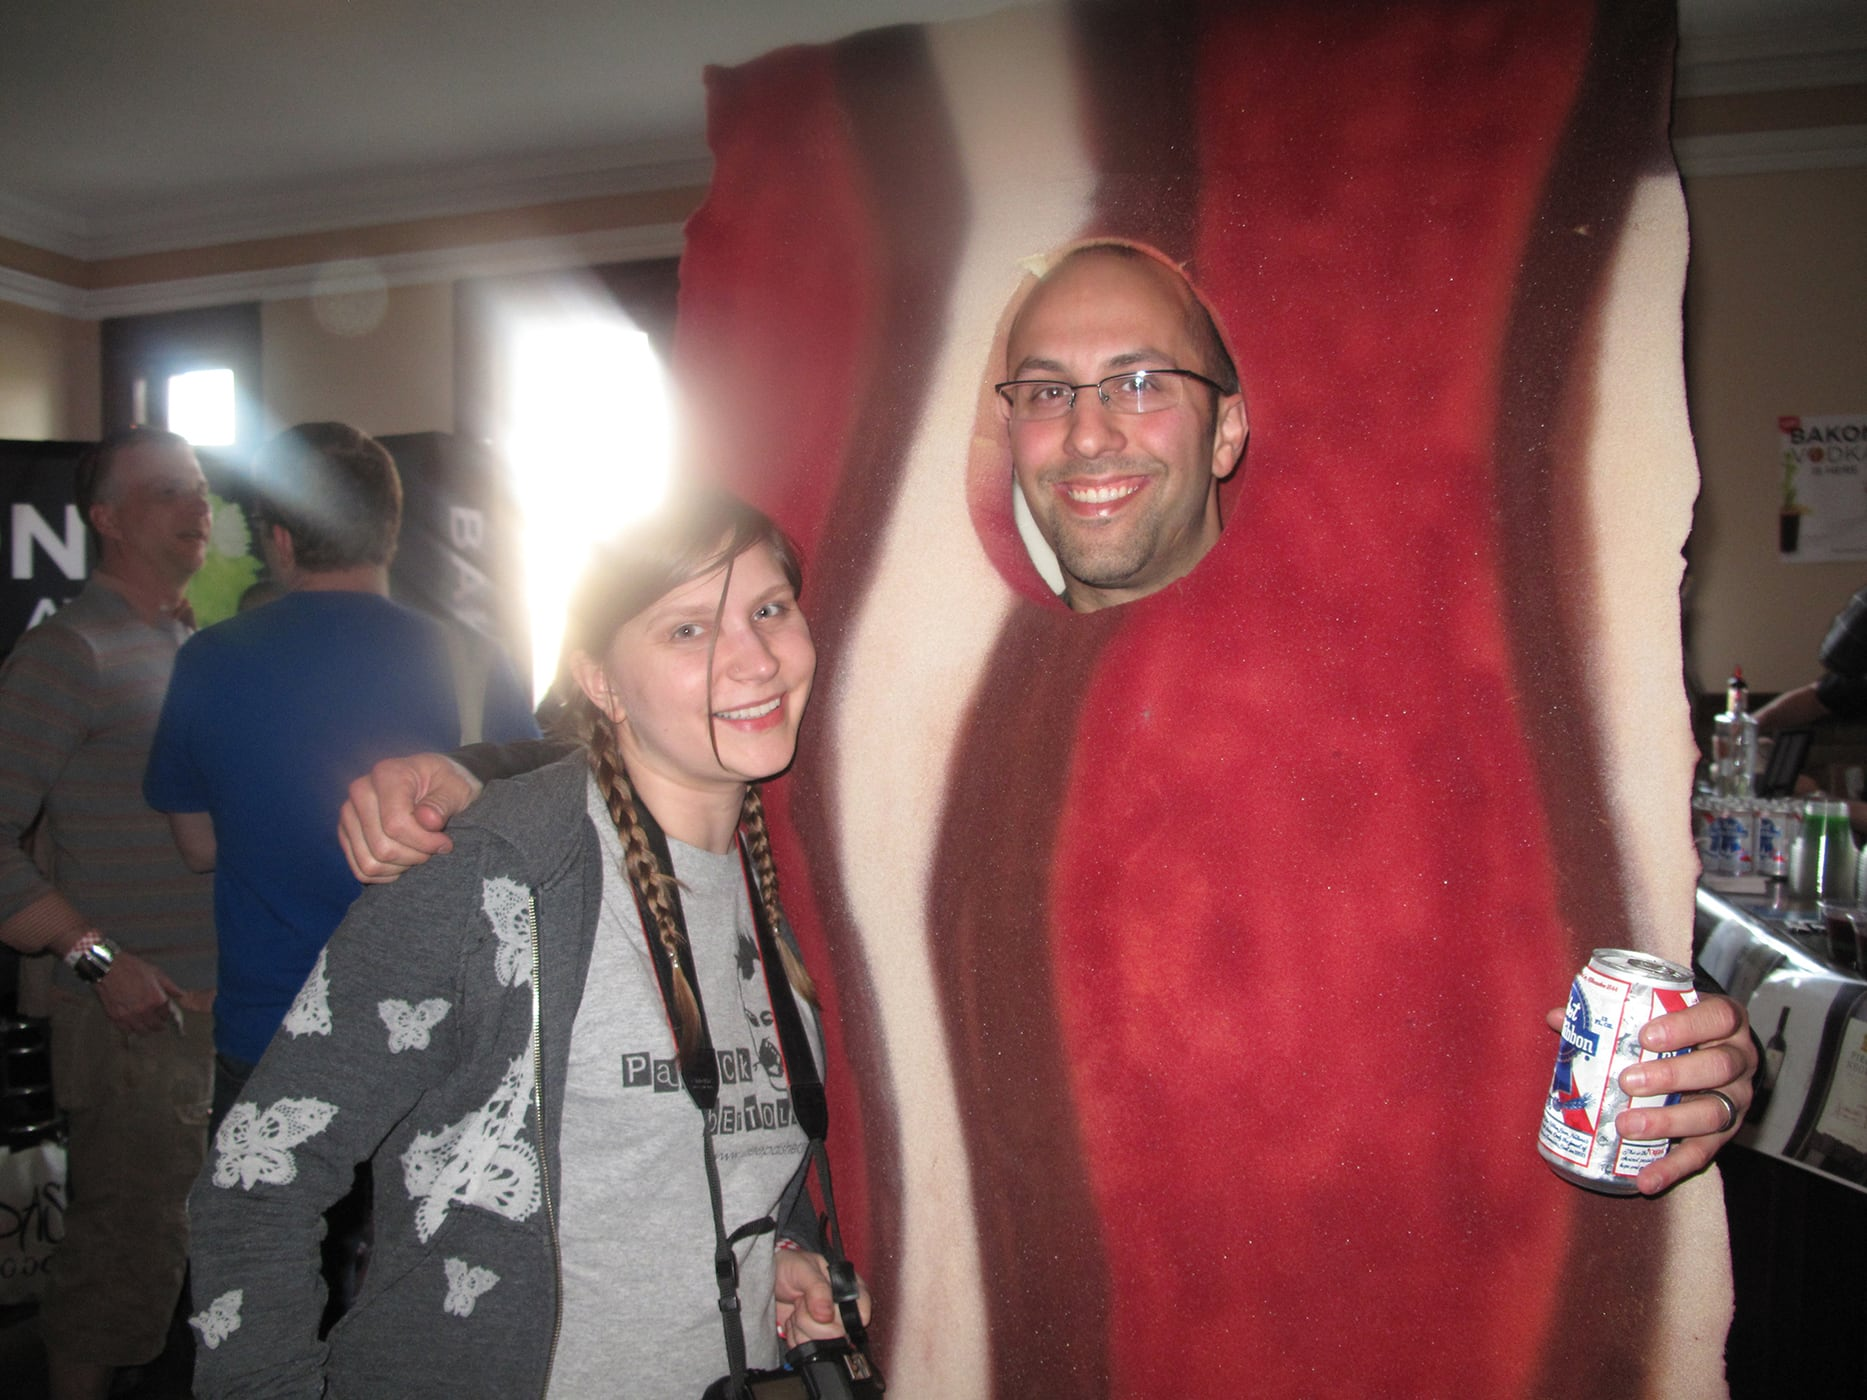 Me and a piece of bacon at Baconfest Chicago - a bacon festival